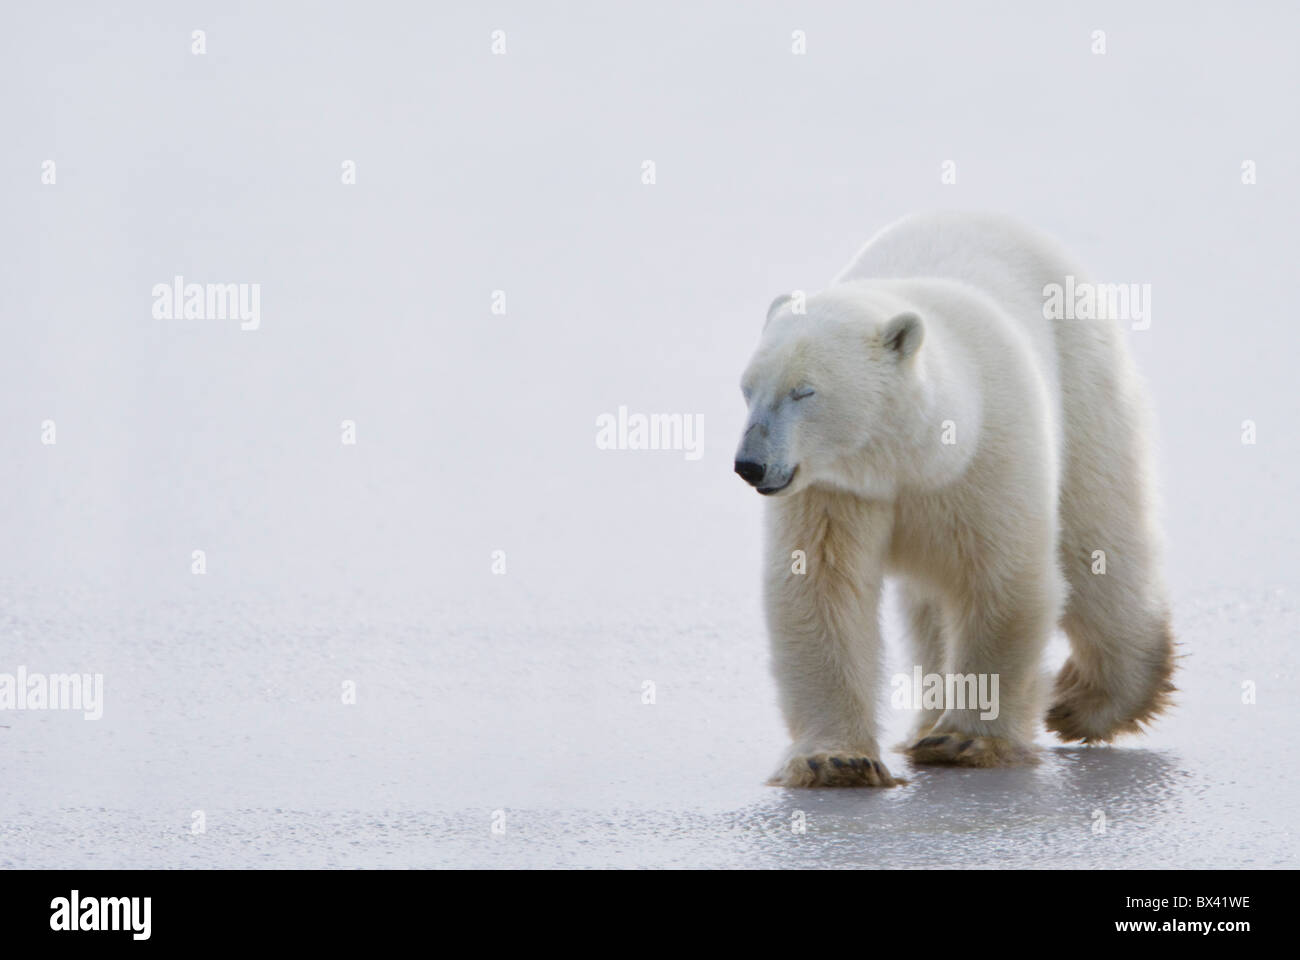 Polar Bear (Ursus Maritimus) Walking On Ice With Eyes Closed, Looking Gentle And Calm; Churchill, Manitoba, Canada - Stock Image